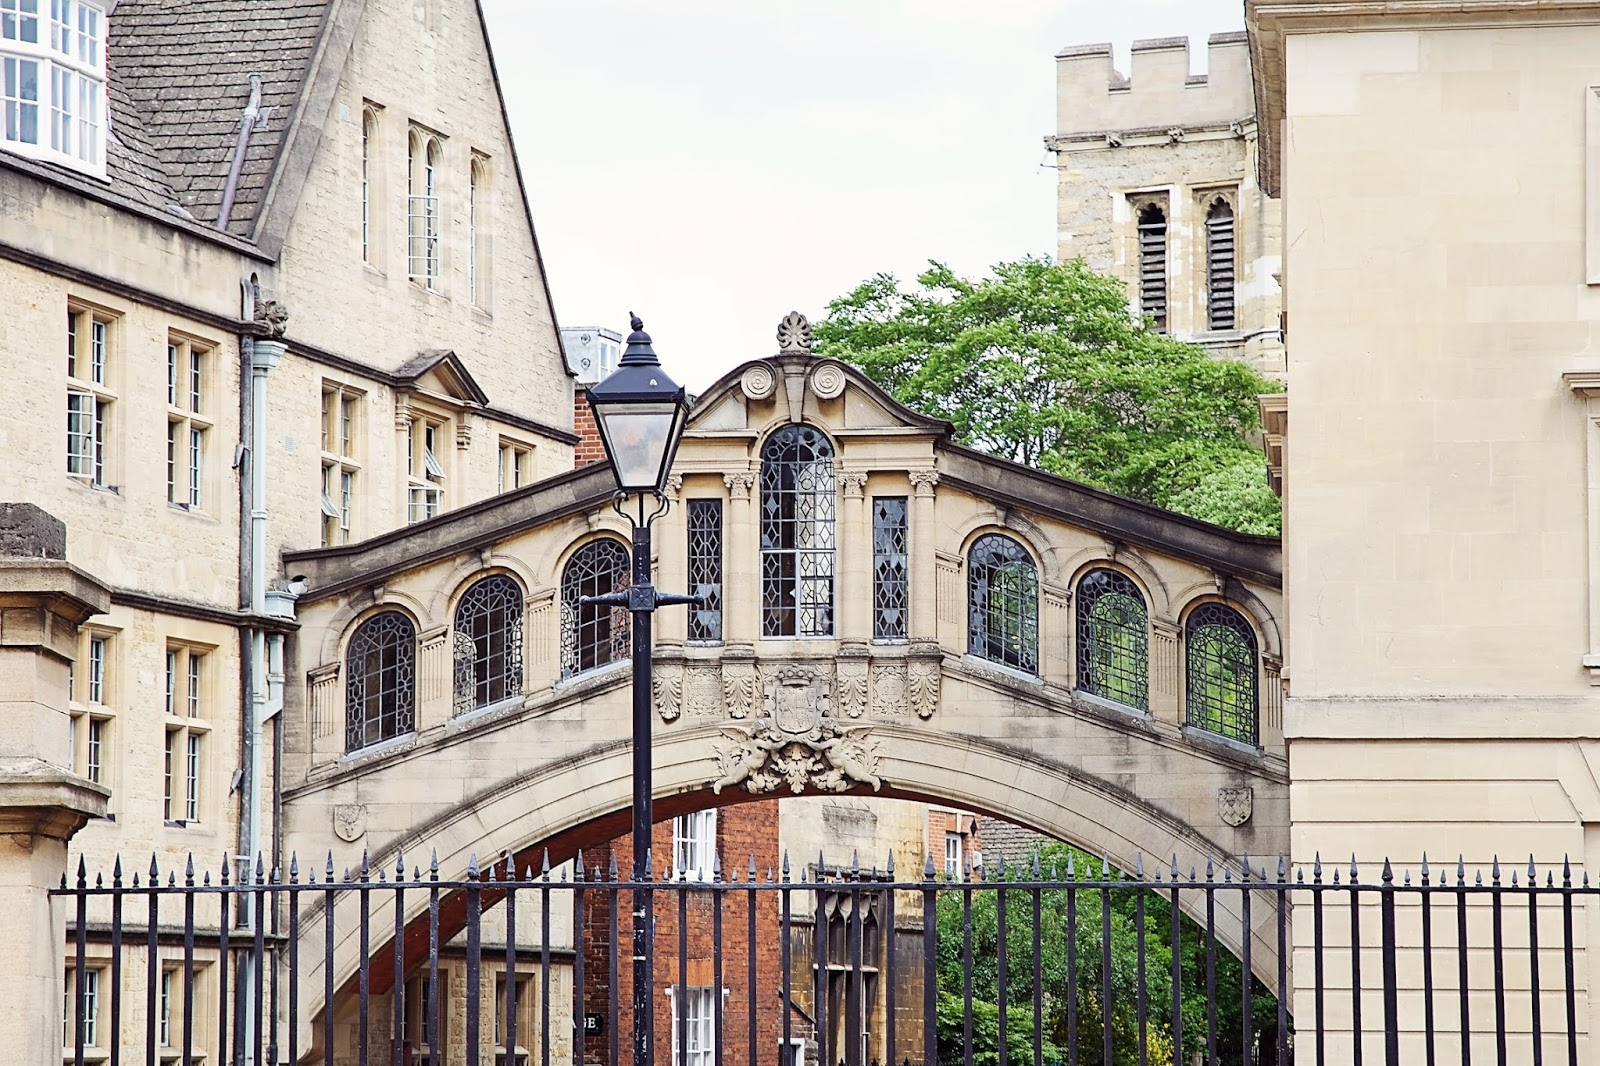 Bridge of Sighs at Oxford University